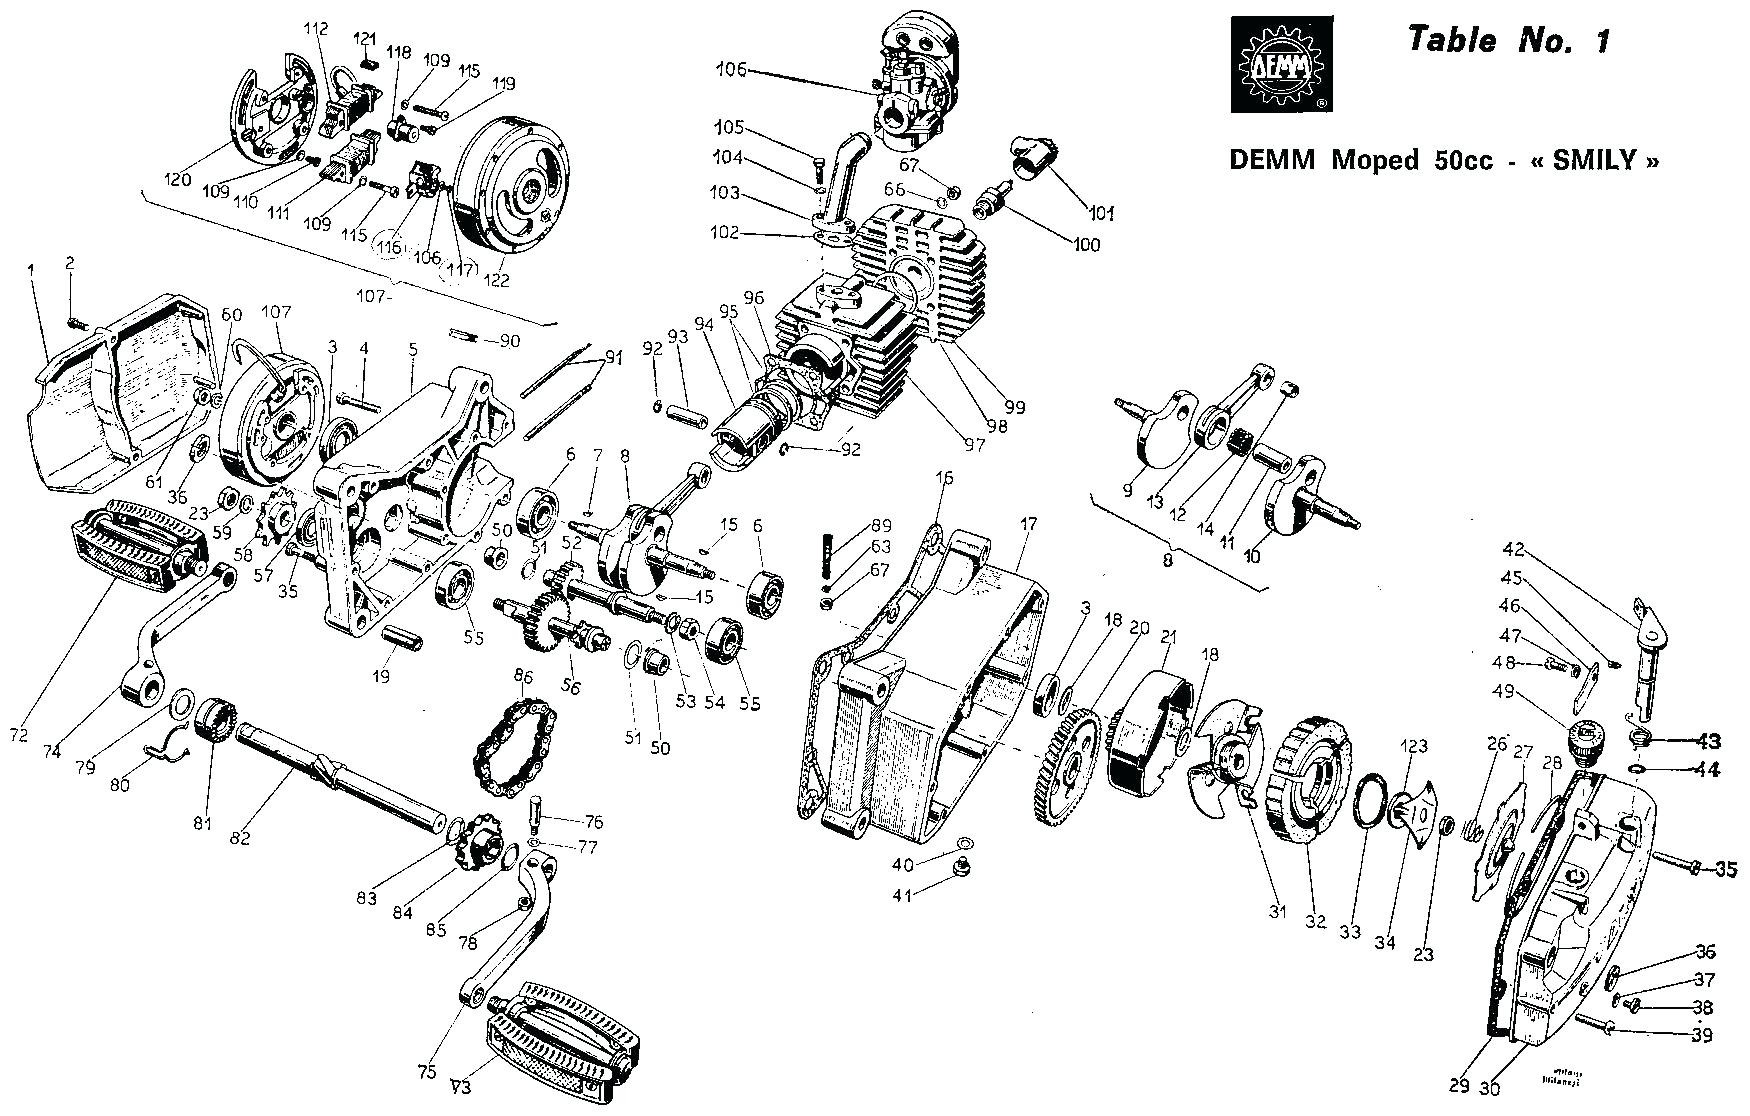 pagsta mini chopper wiring diagram 2006 chevy truck radio tomos a55 engine moped